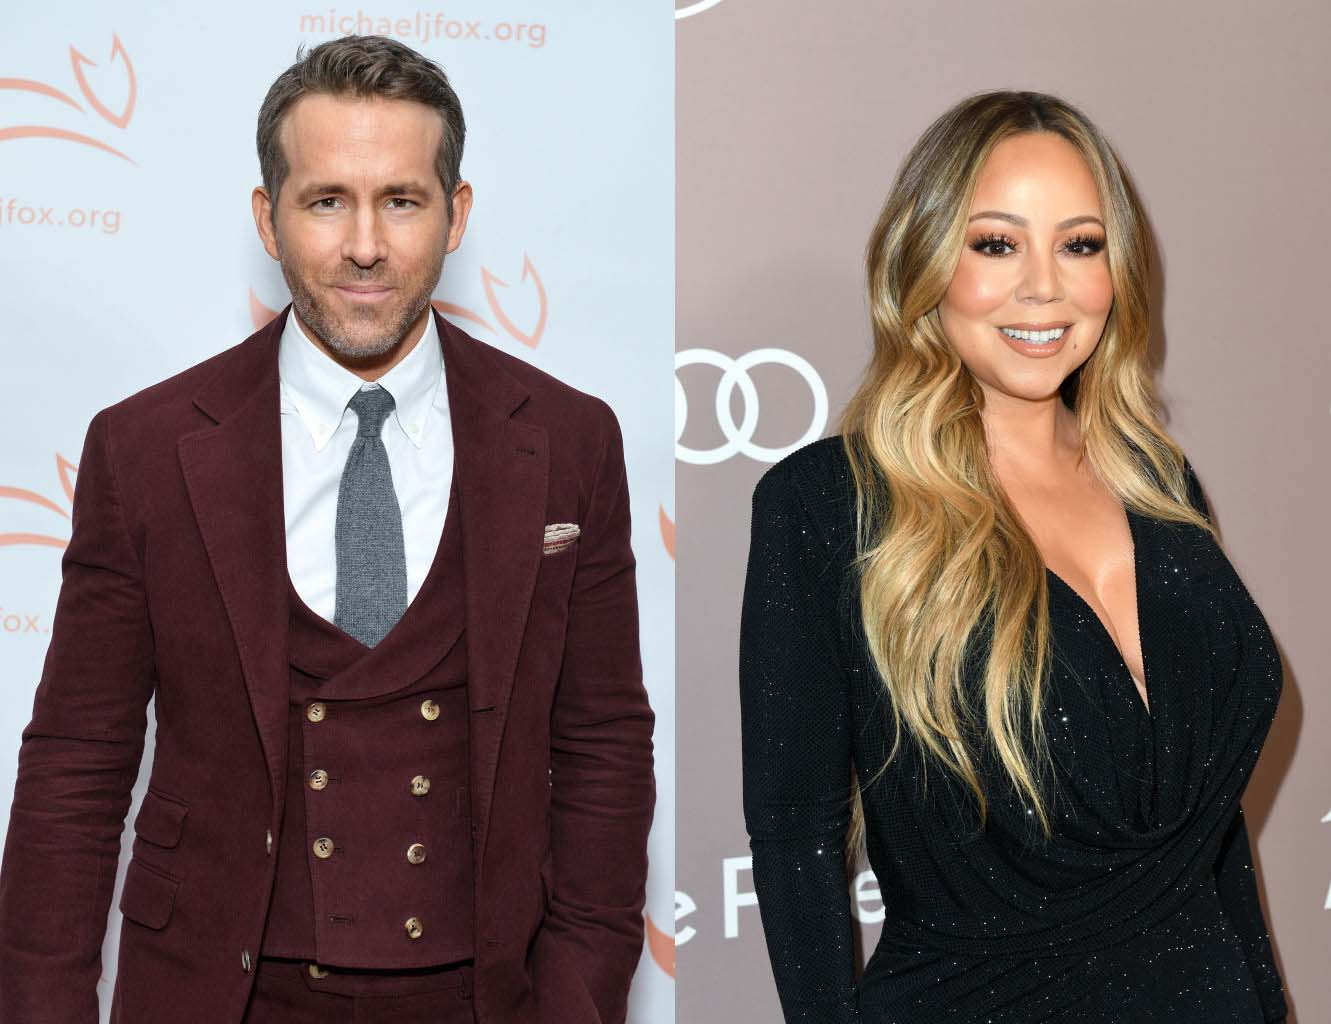 Ryan Reynolds Hilariously Duets With This Iconic Singer, New TikTok May Be The Greatest Collaboration Yet